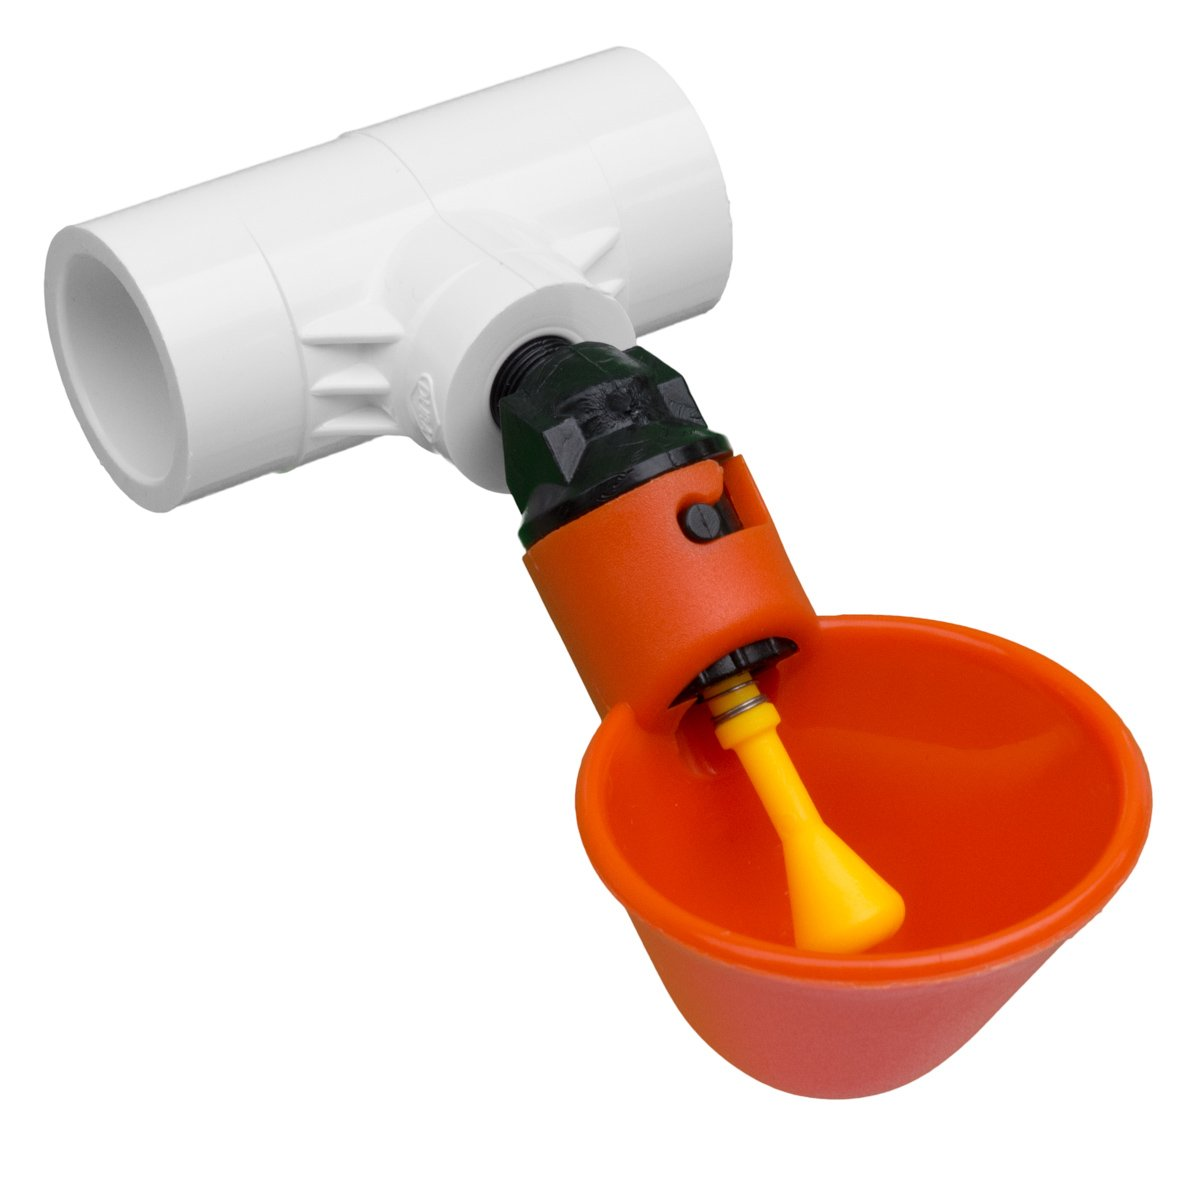 Drinker Cups with Tee Fittings for Backyard Flock Automatic Poultry Watering System (50 Cups / 50 Fittings)